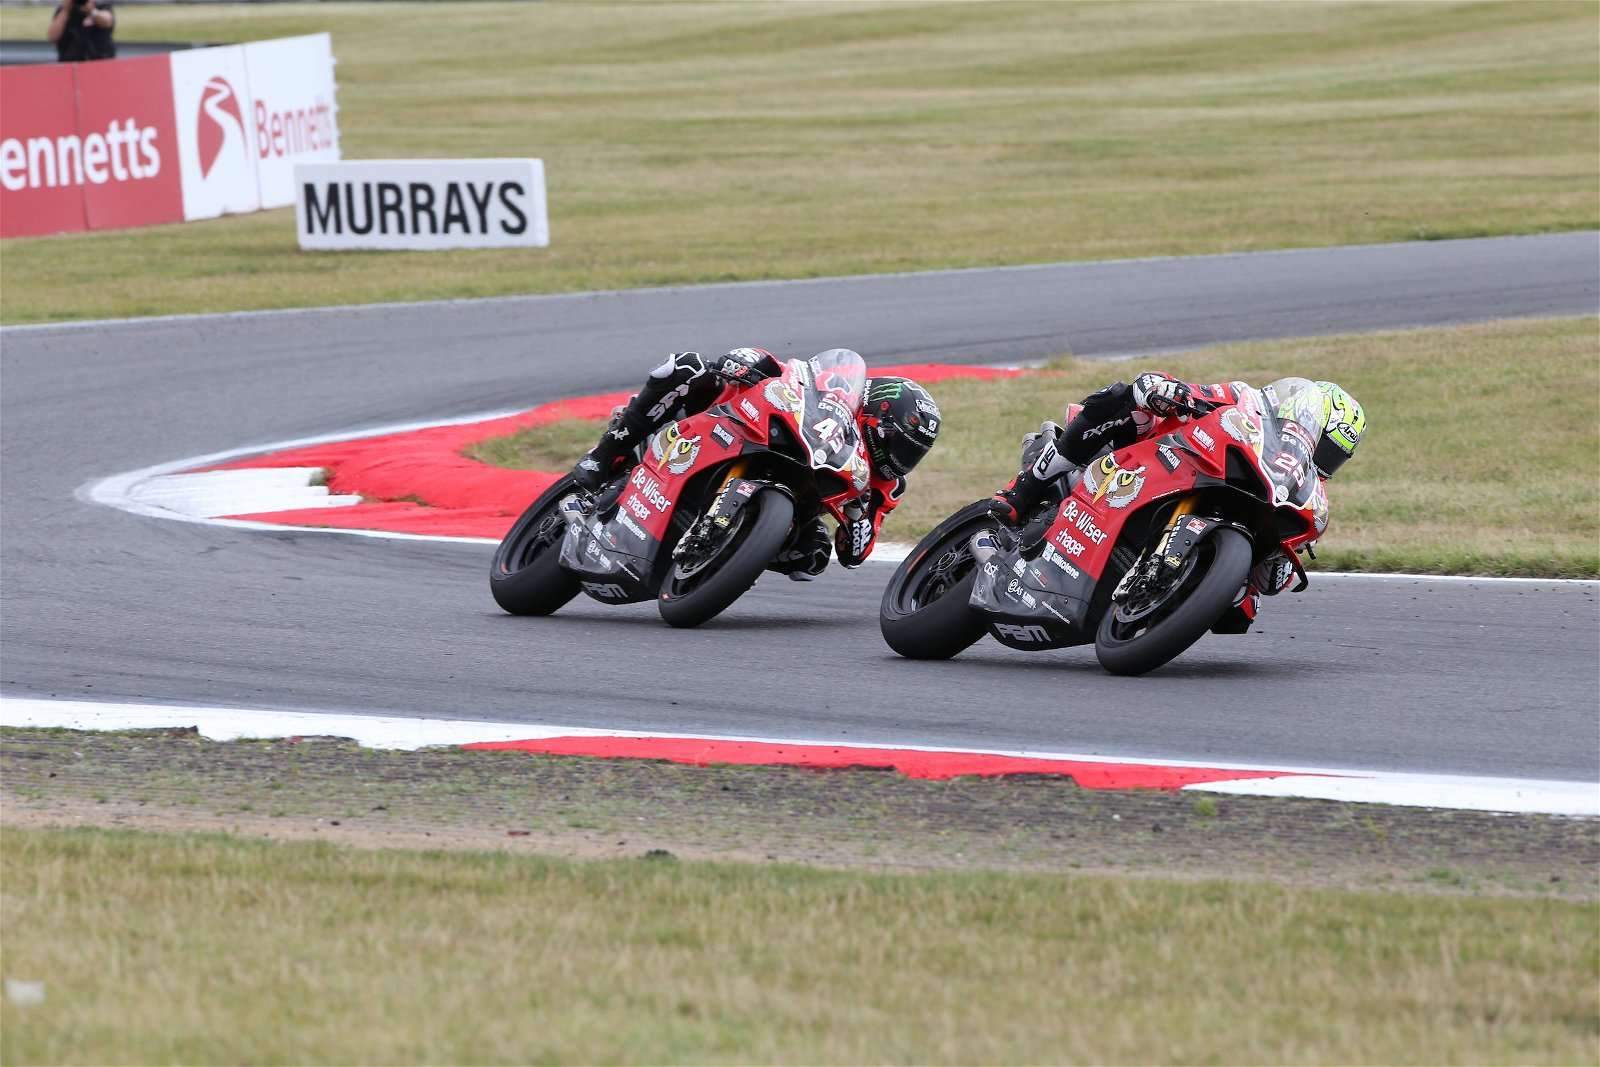 Brookes and Redding BSB Snetterton 2019